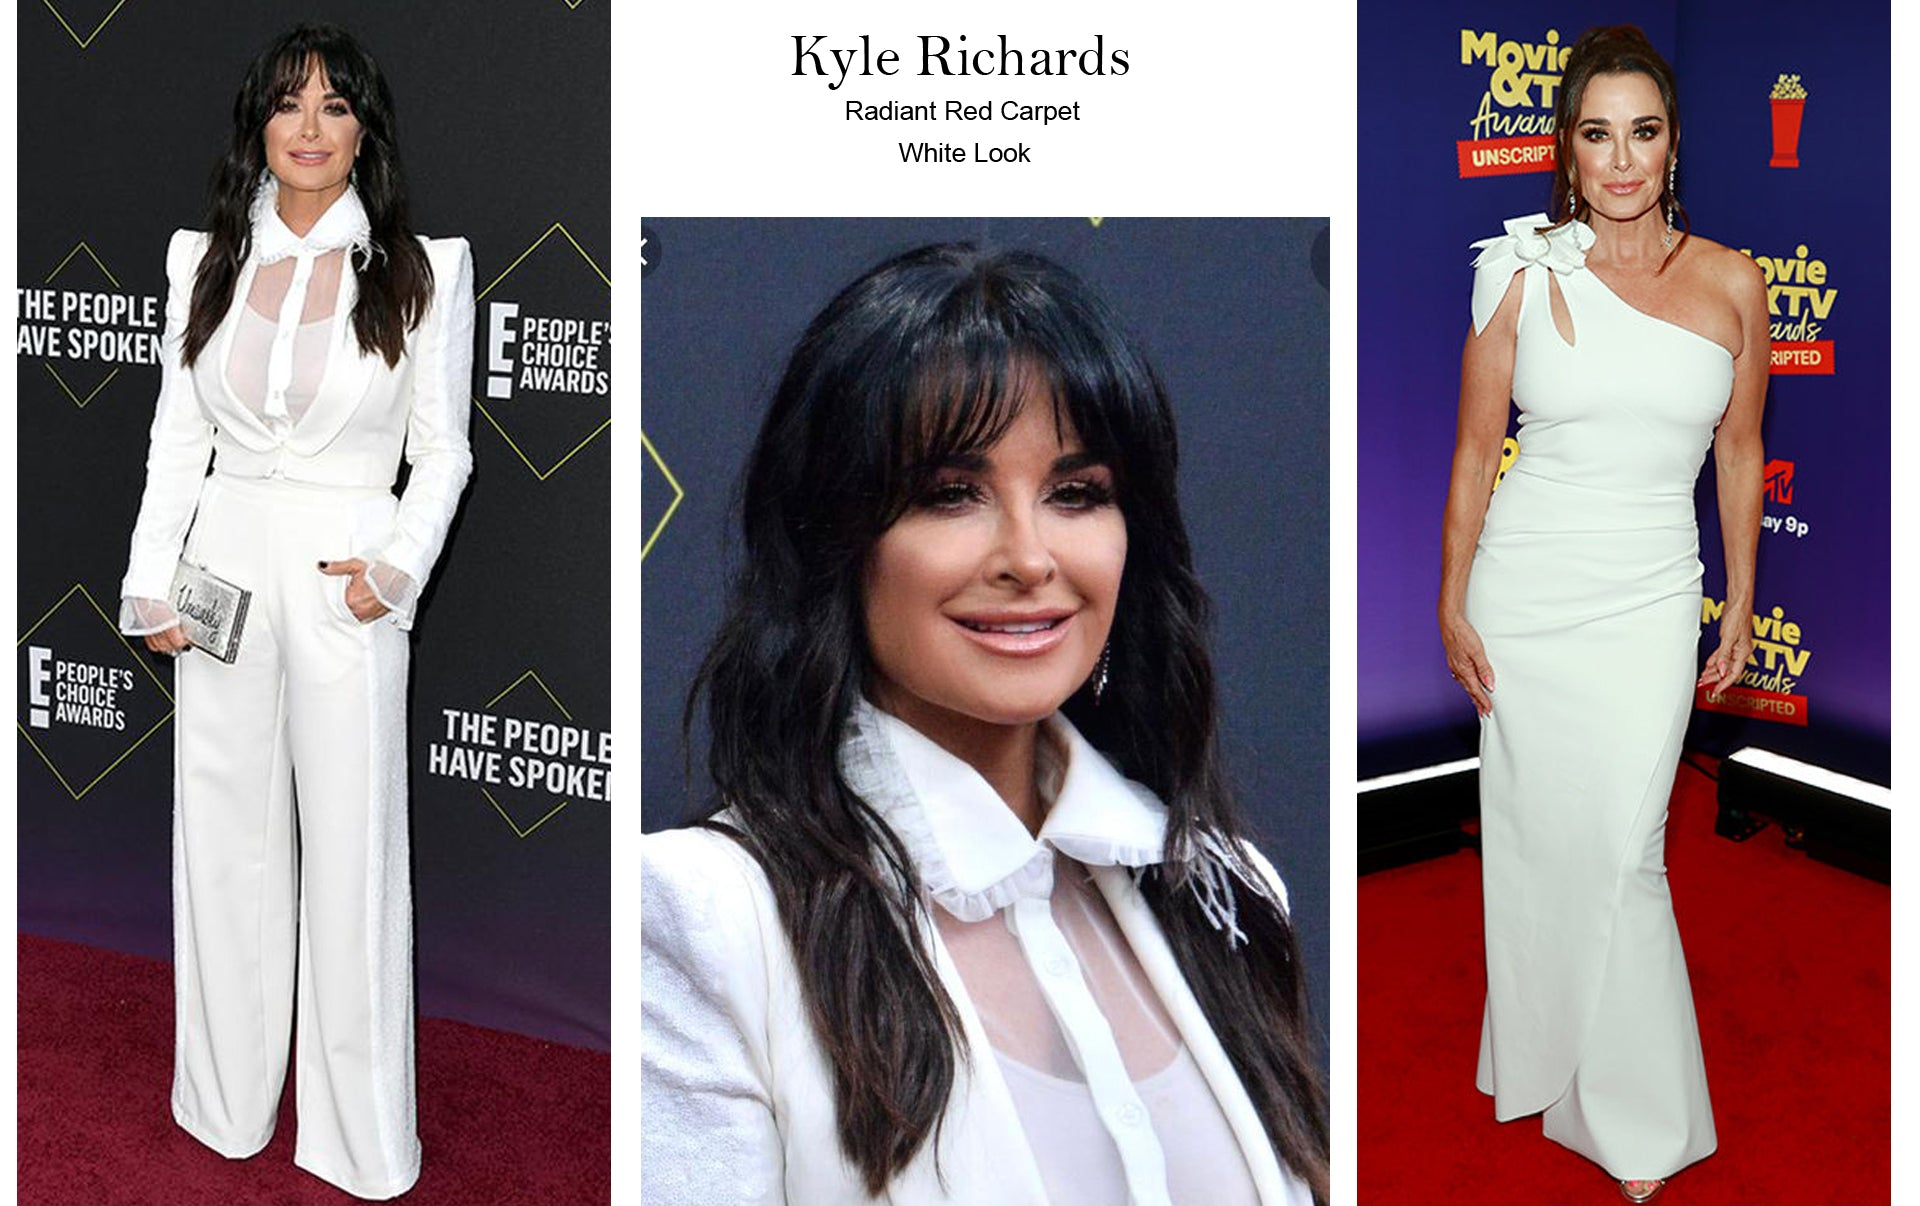 KYLE WHITE SUIT SIDE SEQUIN - SEEN ON RED CARPET PEOPLE CHOICE AWARDS